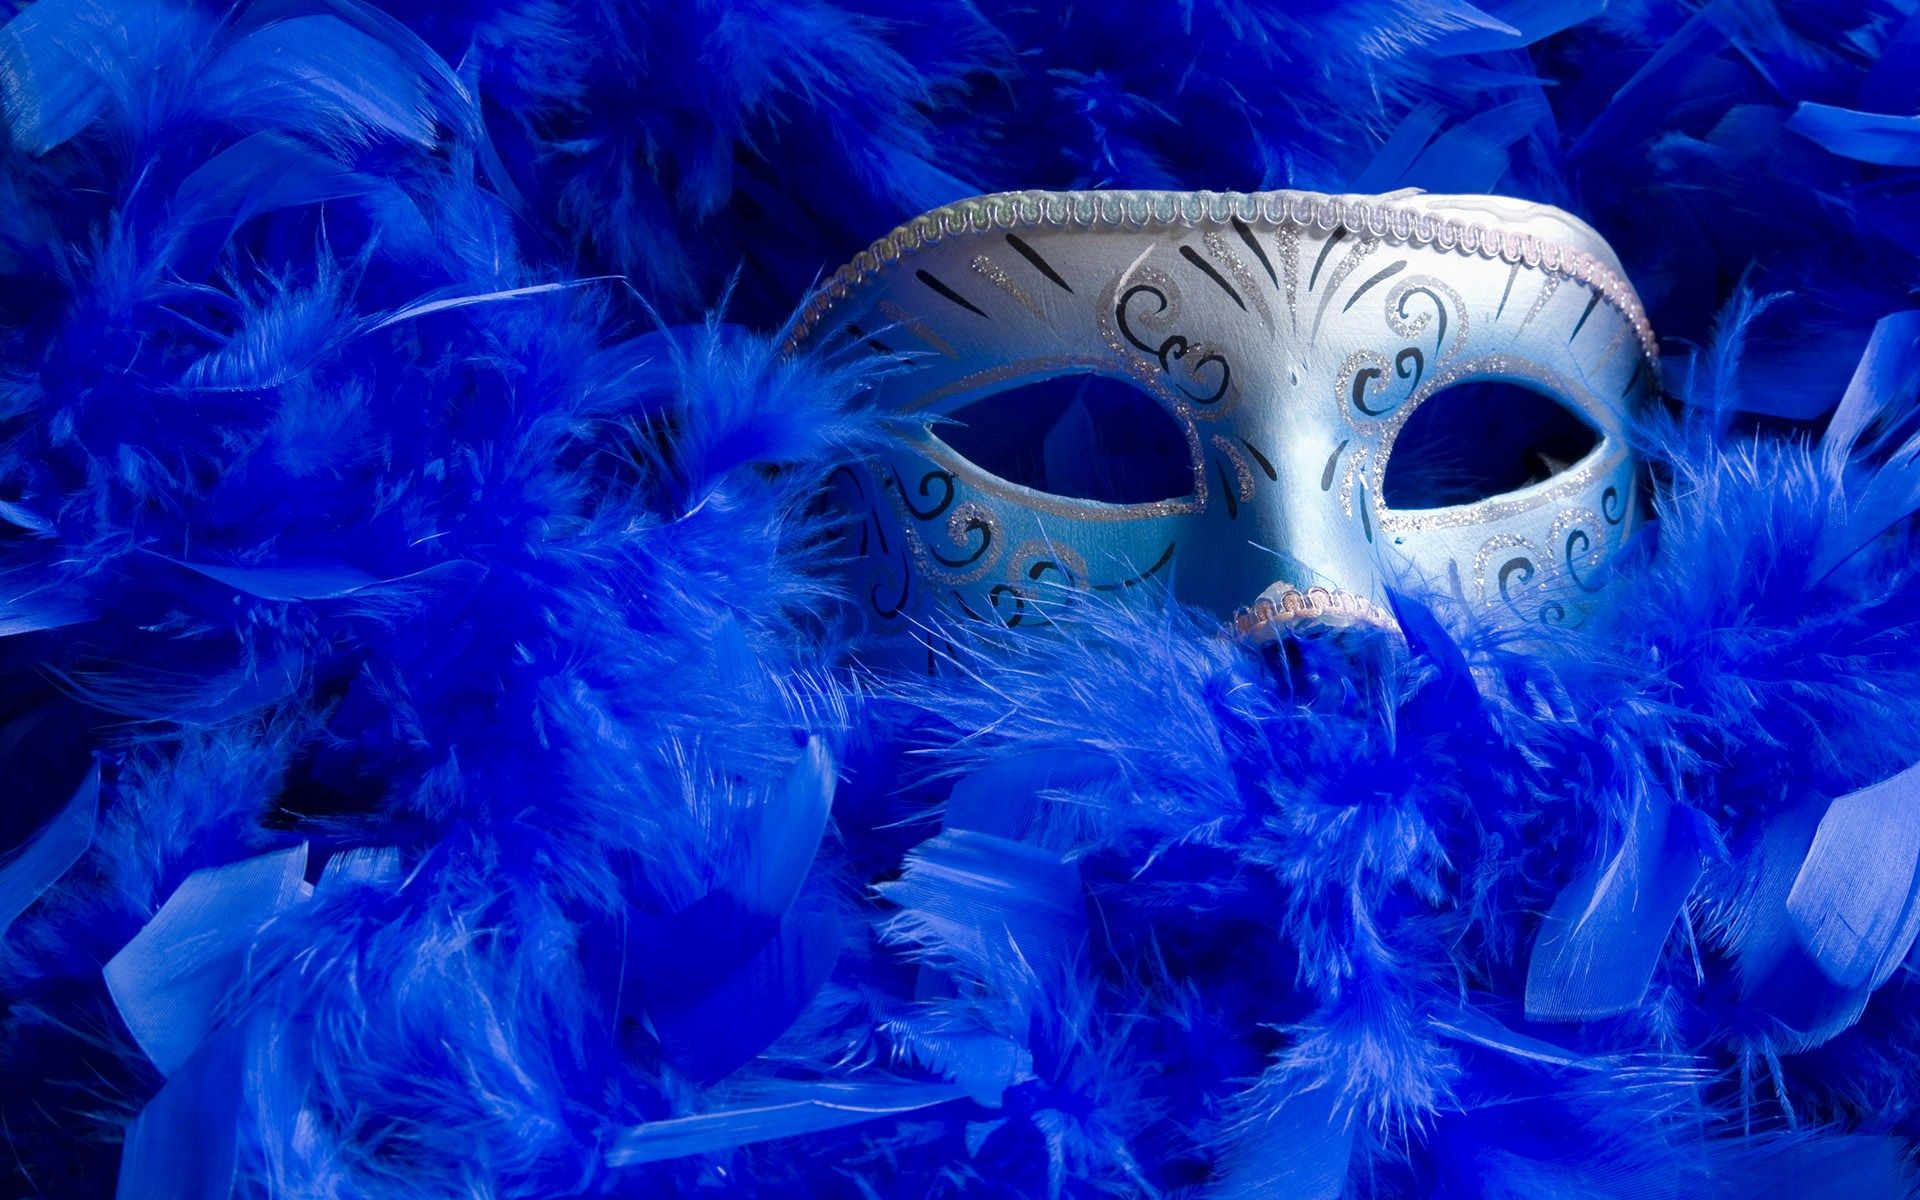 Masquerade Mask Hd Wallpaper Freehdwall Com Free Hd Wallpapers For Your Desktop Venice Mask Carnival Masks Masquerade